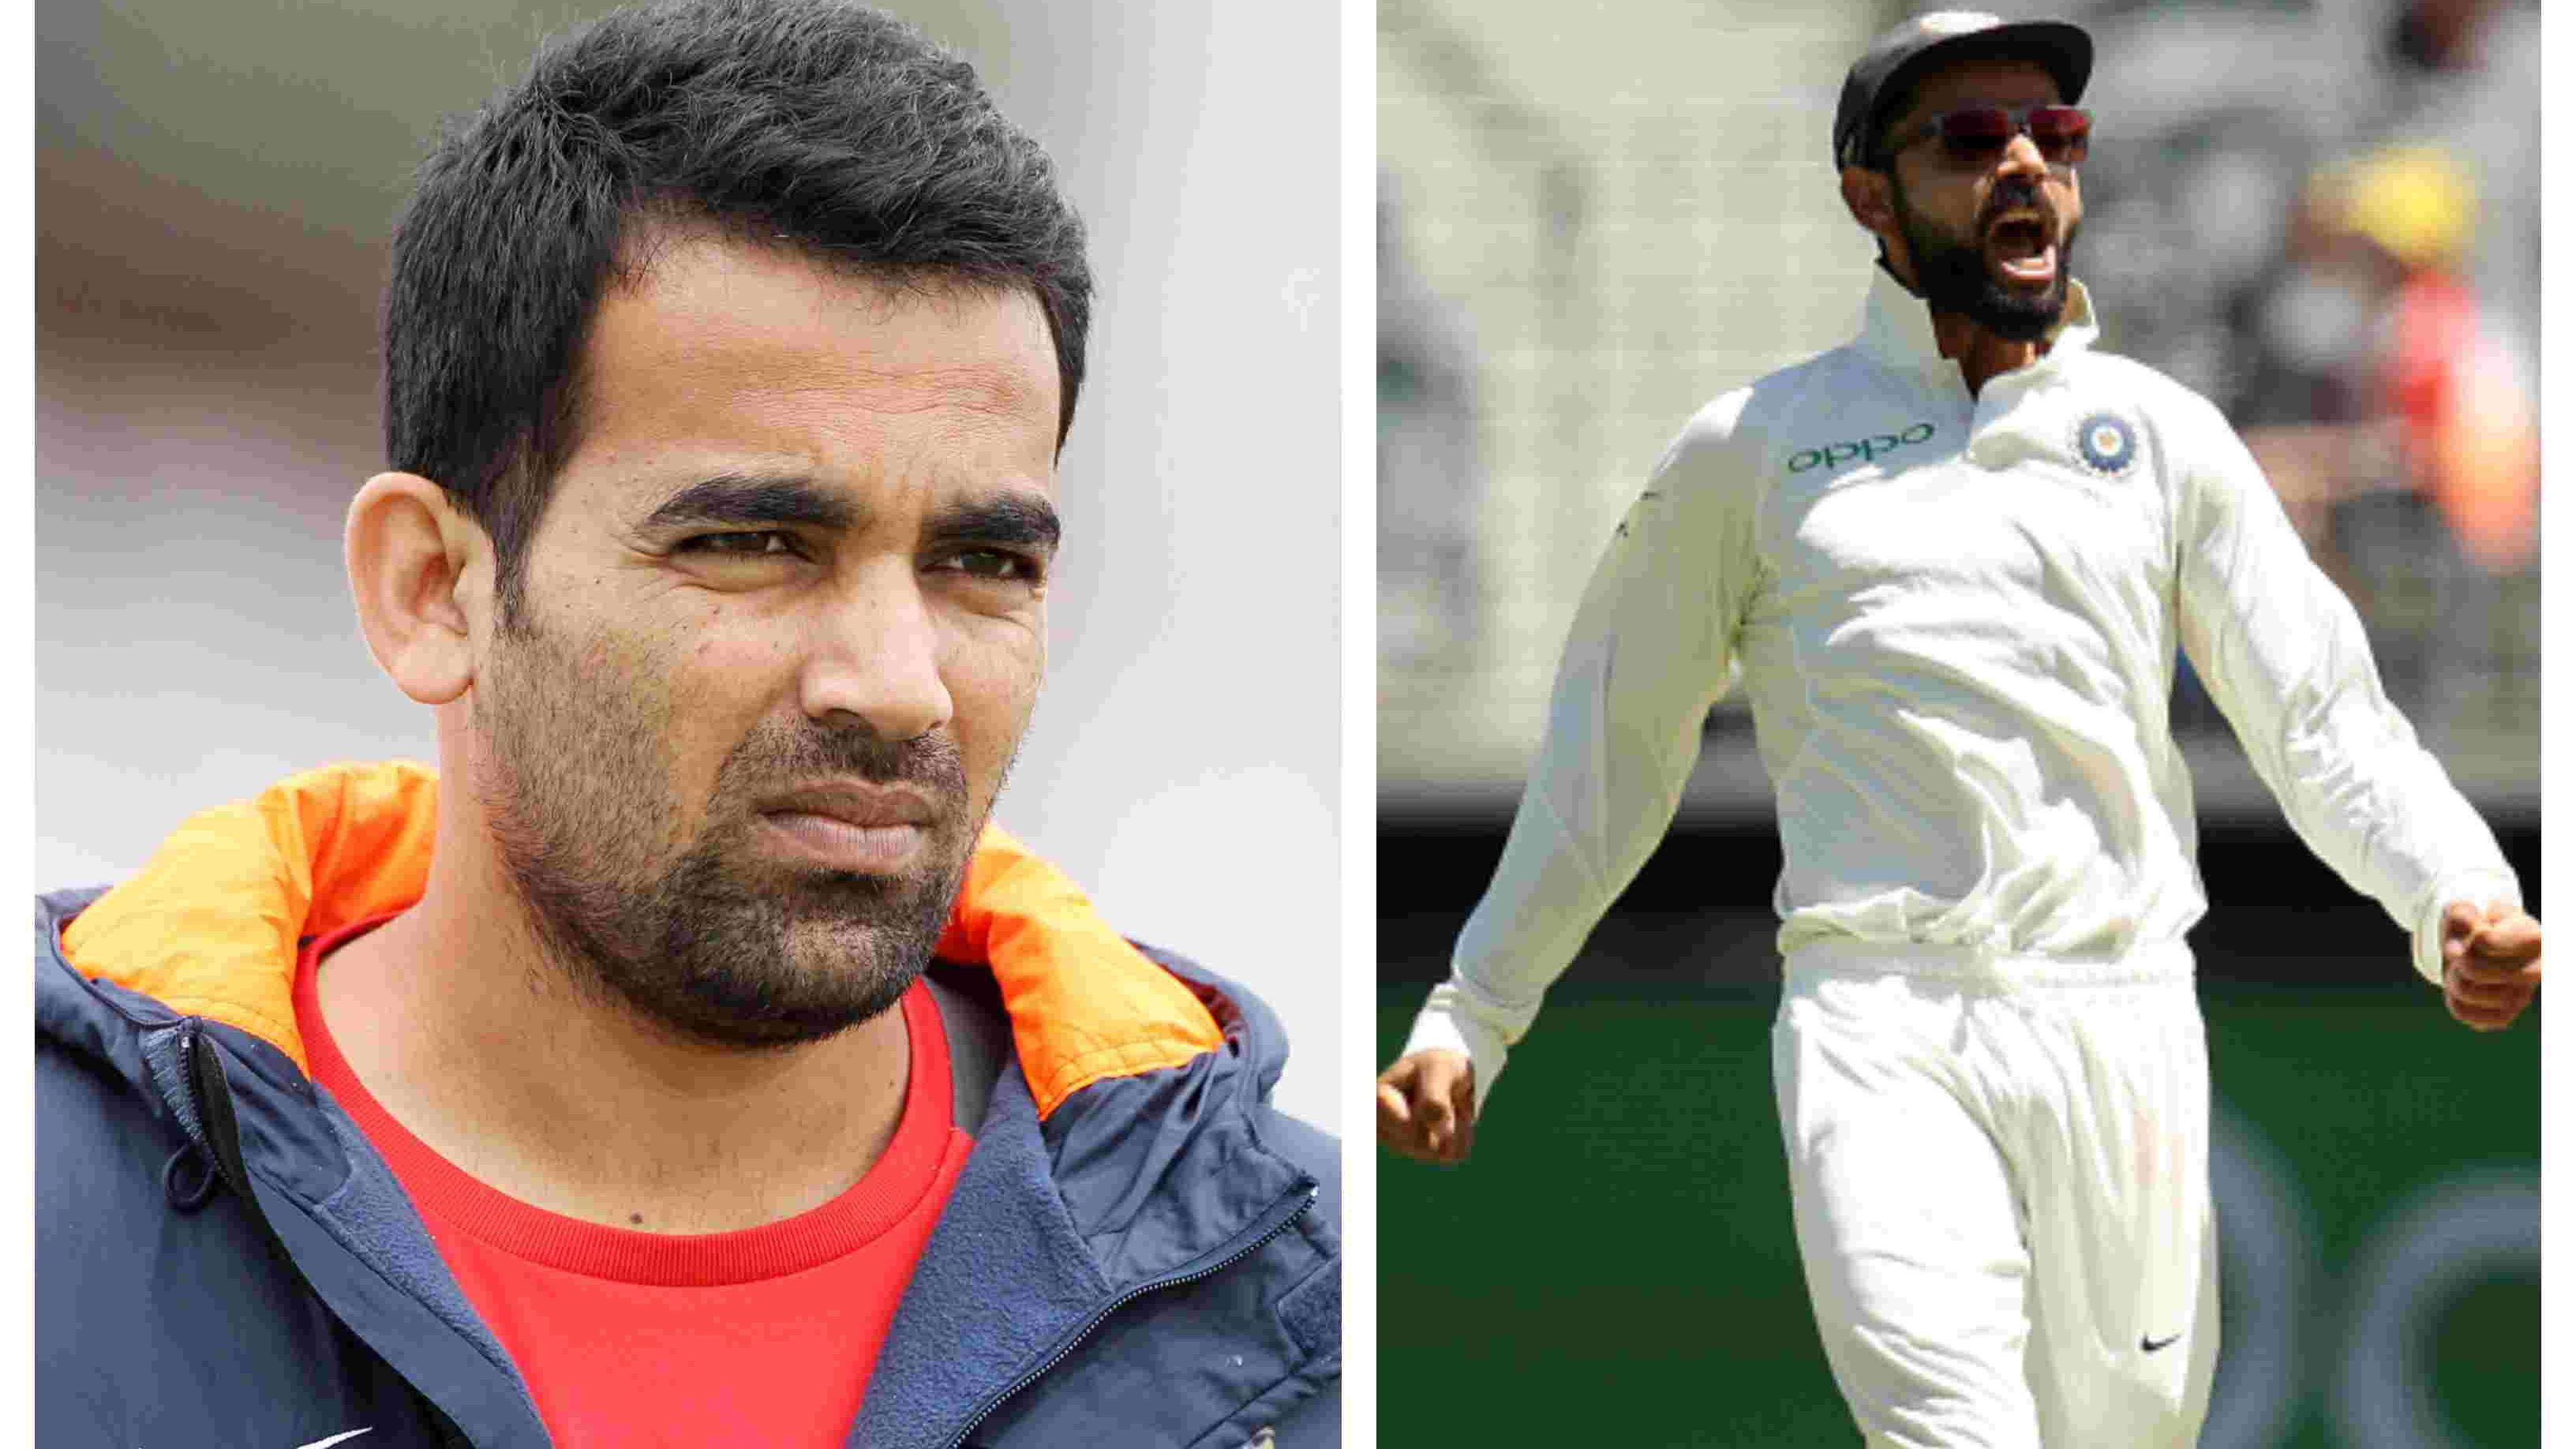 AUS v IND 2018-19: Virat Kohli should not tone down his aggression, says Zaheer Khan